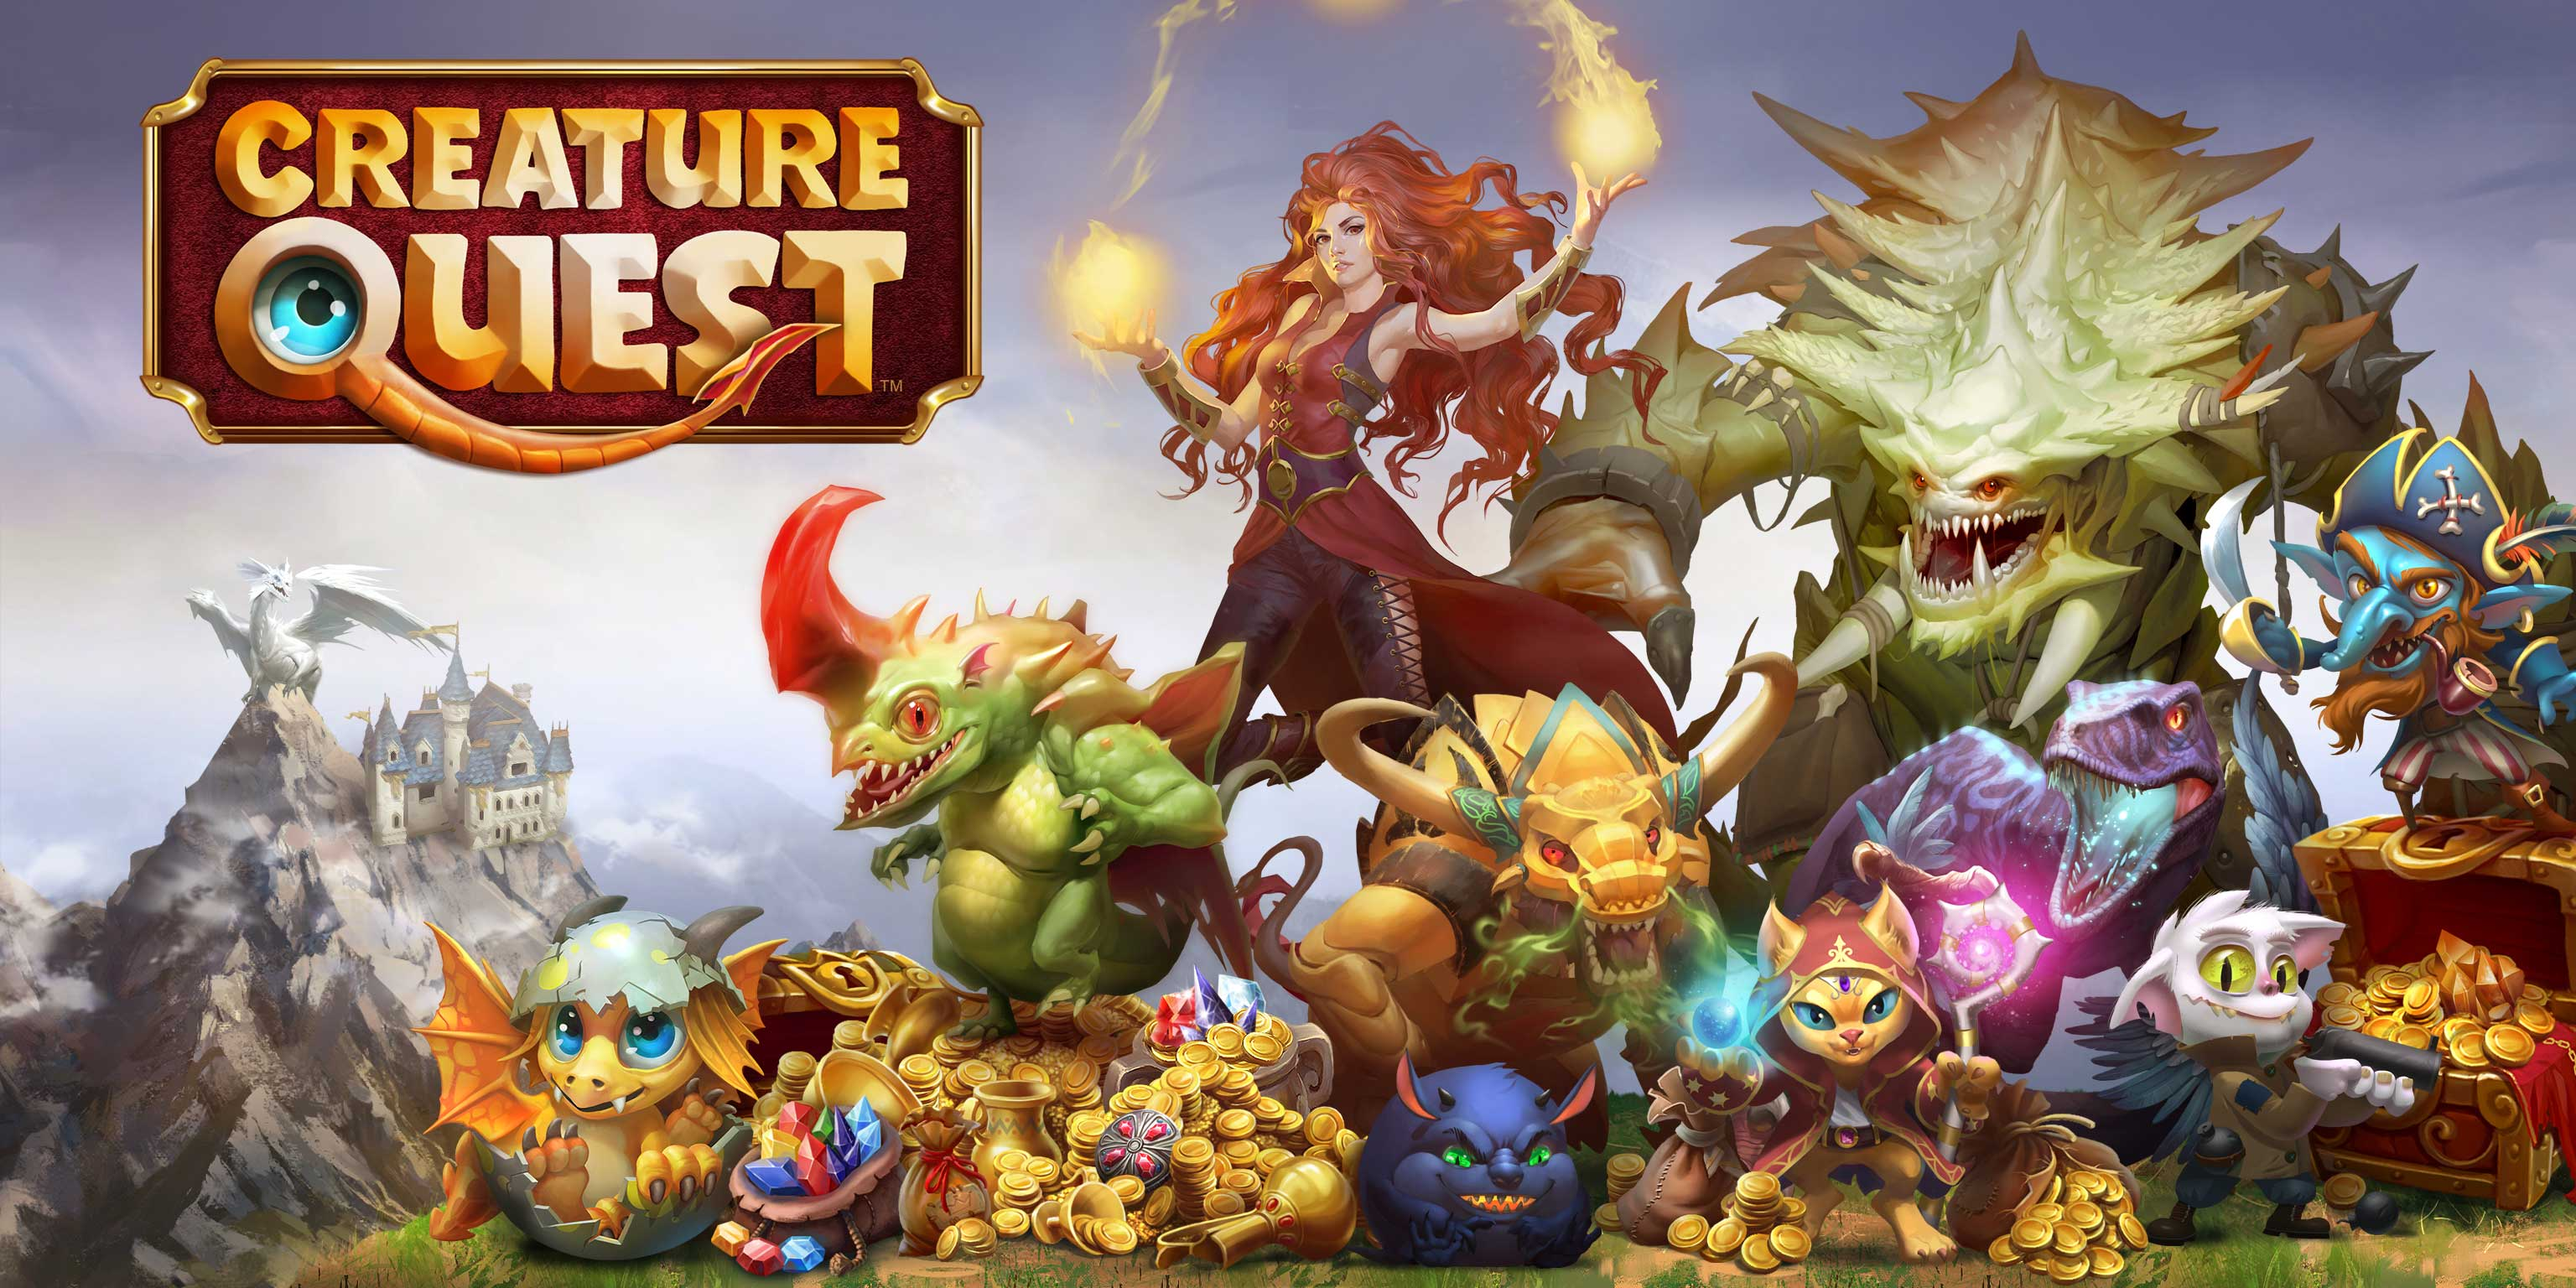 Creature Quest devs open up on the game's future